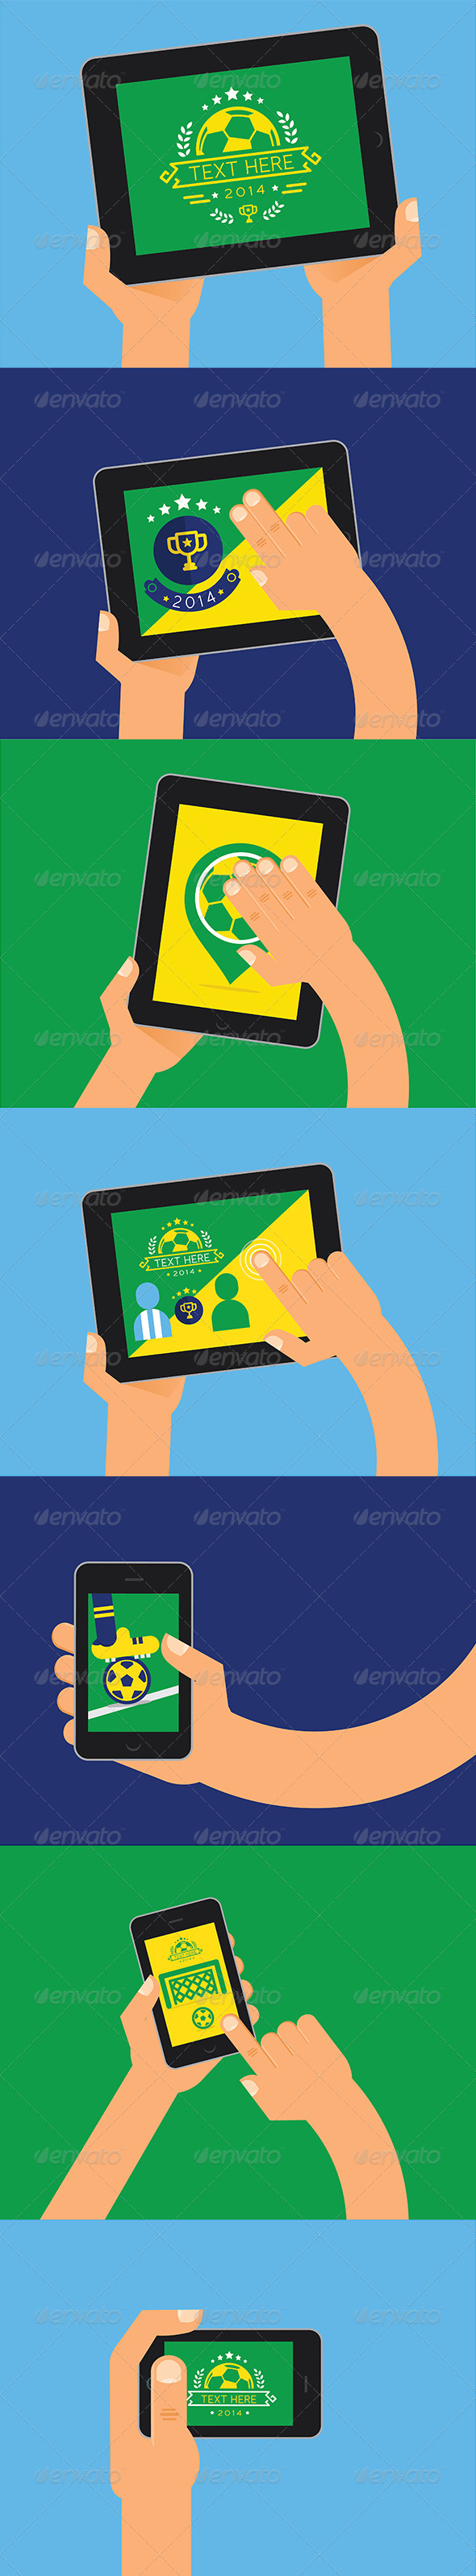 Soccer Tablets Brazil Design - Sports/Activity Conceptual